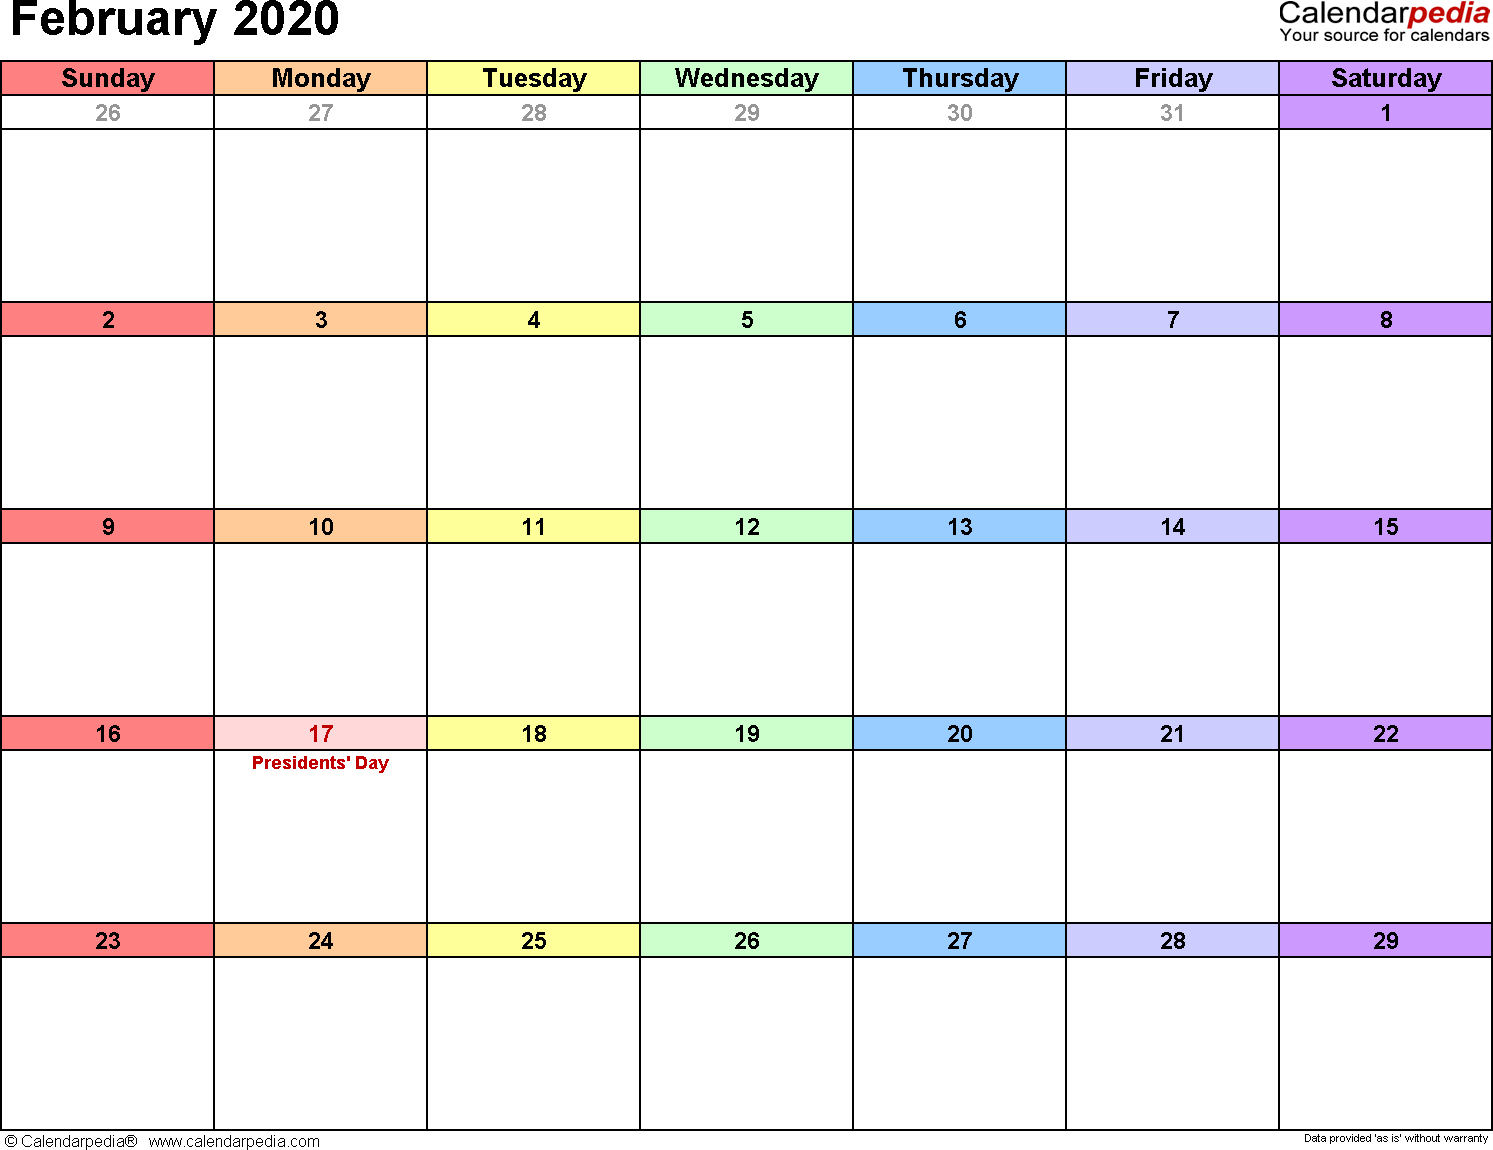 Calendar Print February 2020 February 2020 Calendars for Word, Excel & PDF